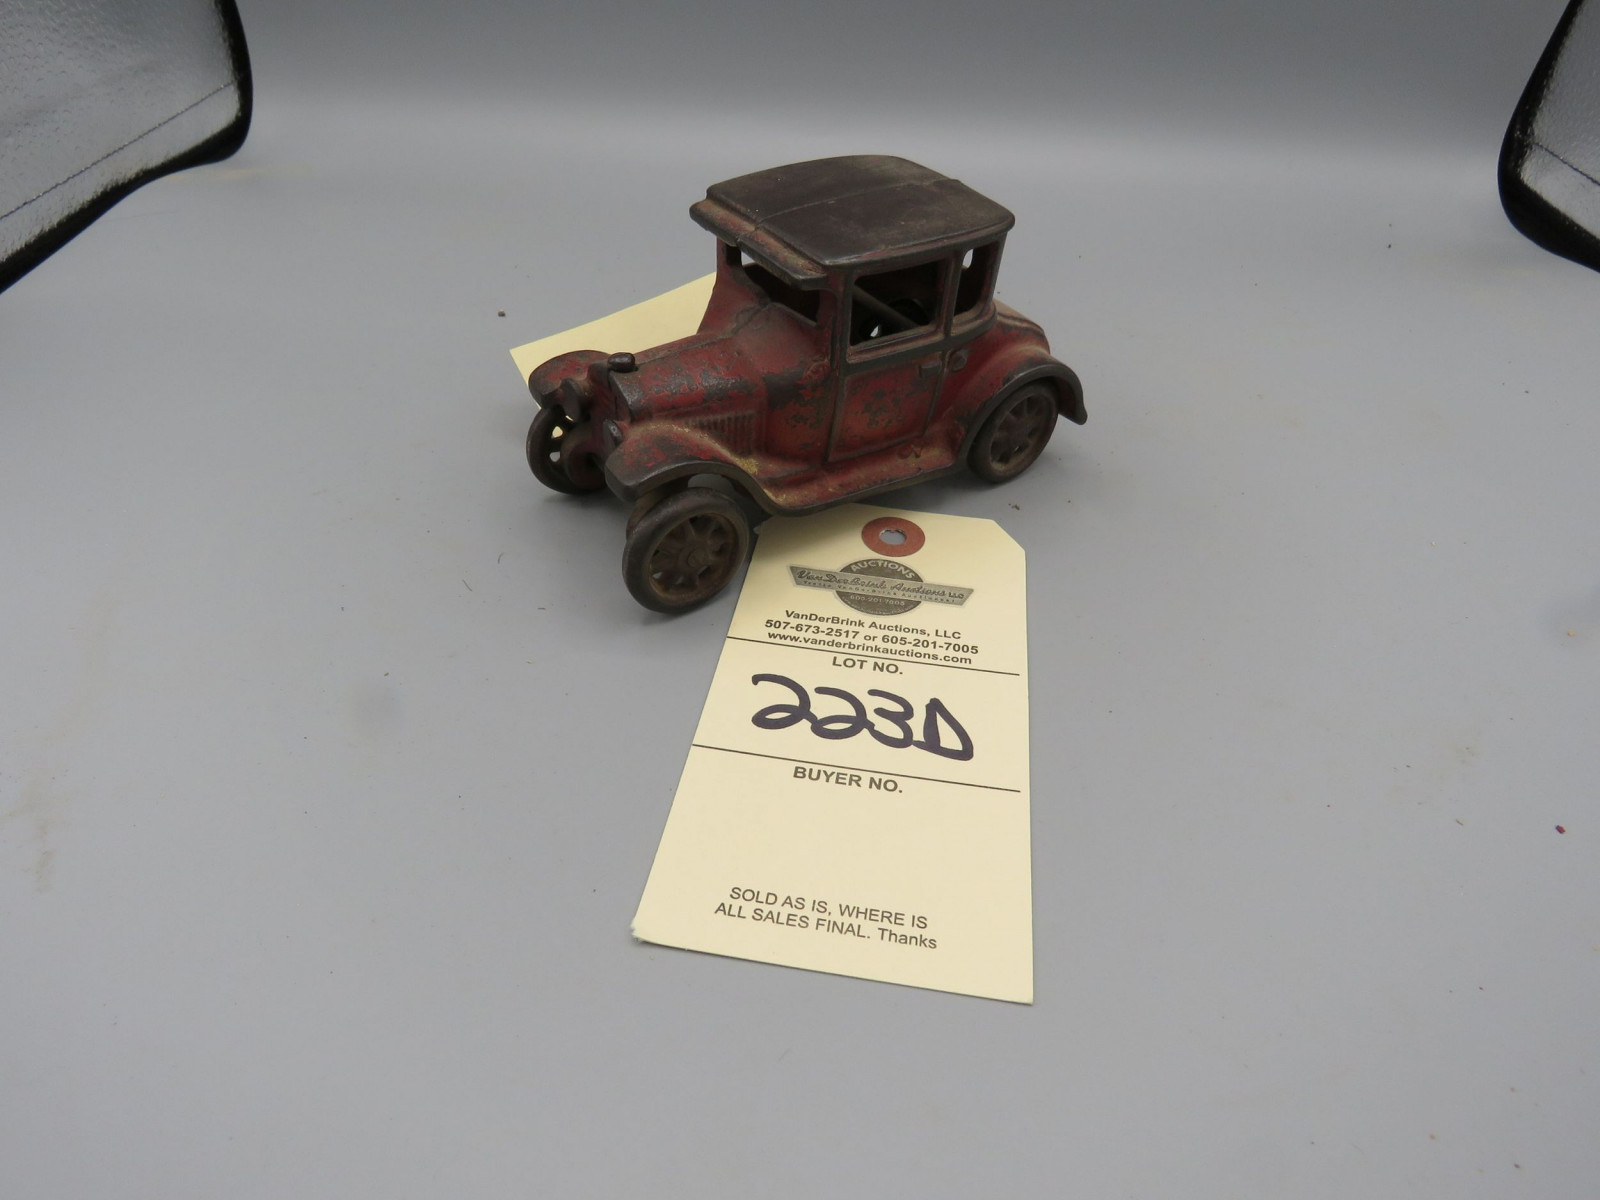 Arcade Cast Iron Coupe @1926 Approx. 6 inches - Image 1